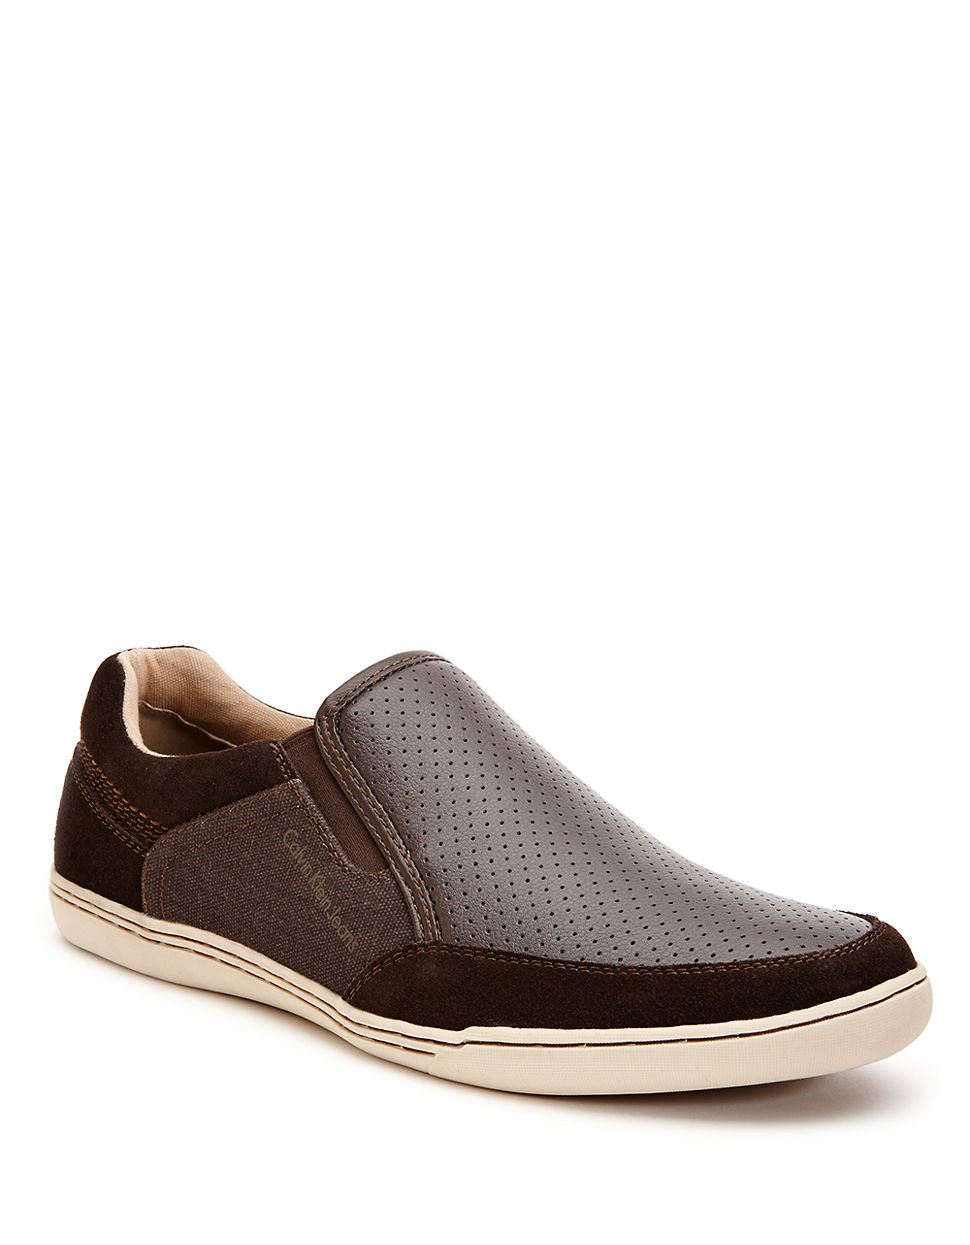 calvin klein chet slip on sneakers in brown for men lyst. Black Bedroom Furniture Sets. Home Design Ideas